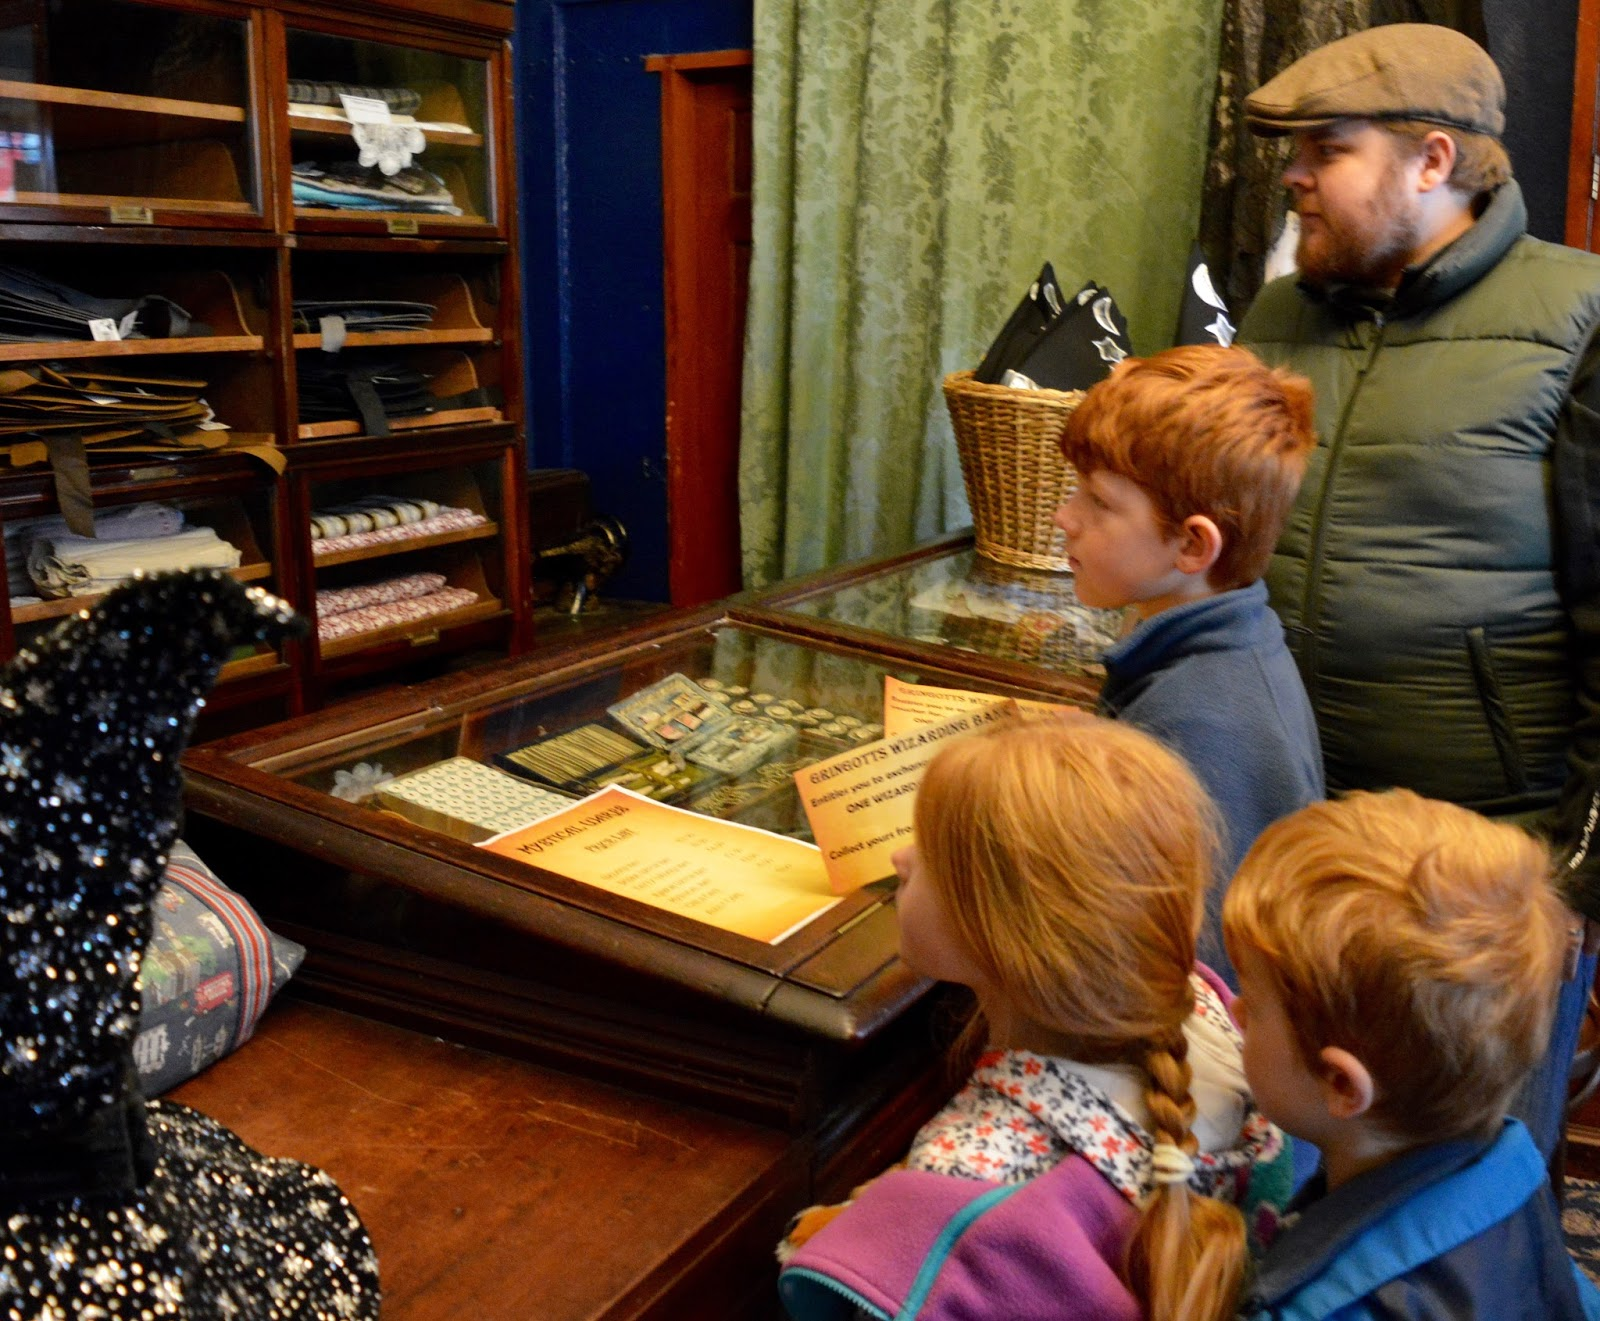 Half Term Hocus Pocus at Preston Park | The North East's very own Diagon Alley - hat shop